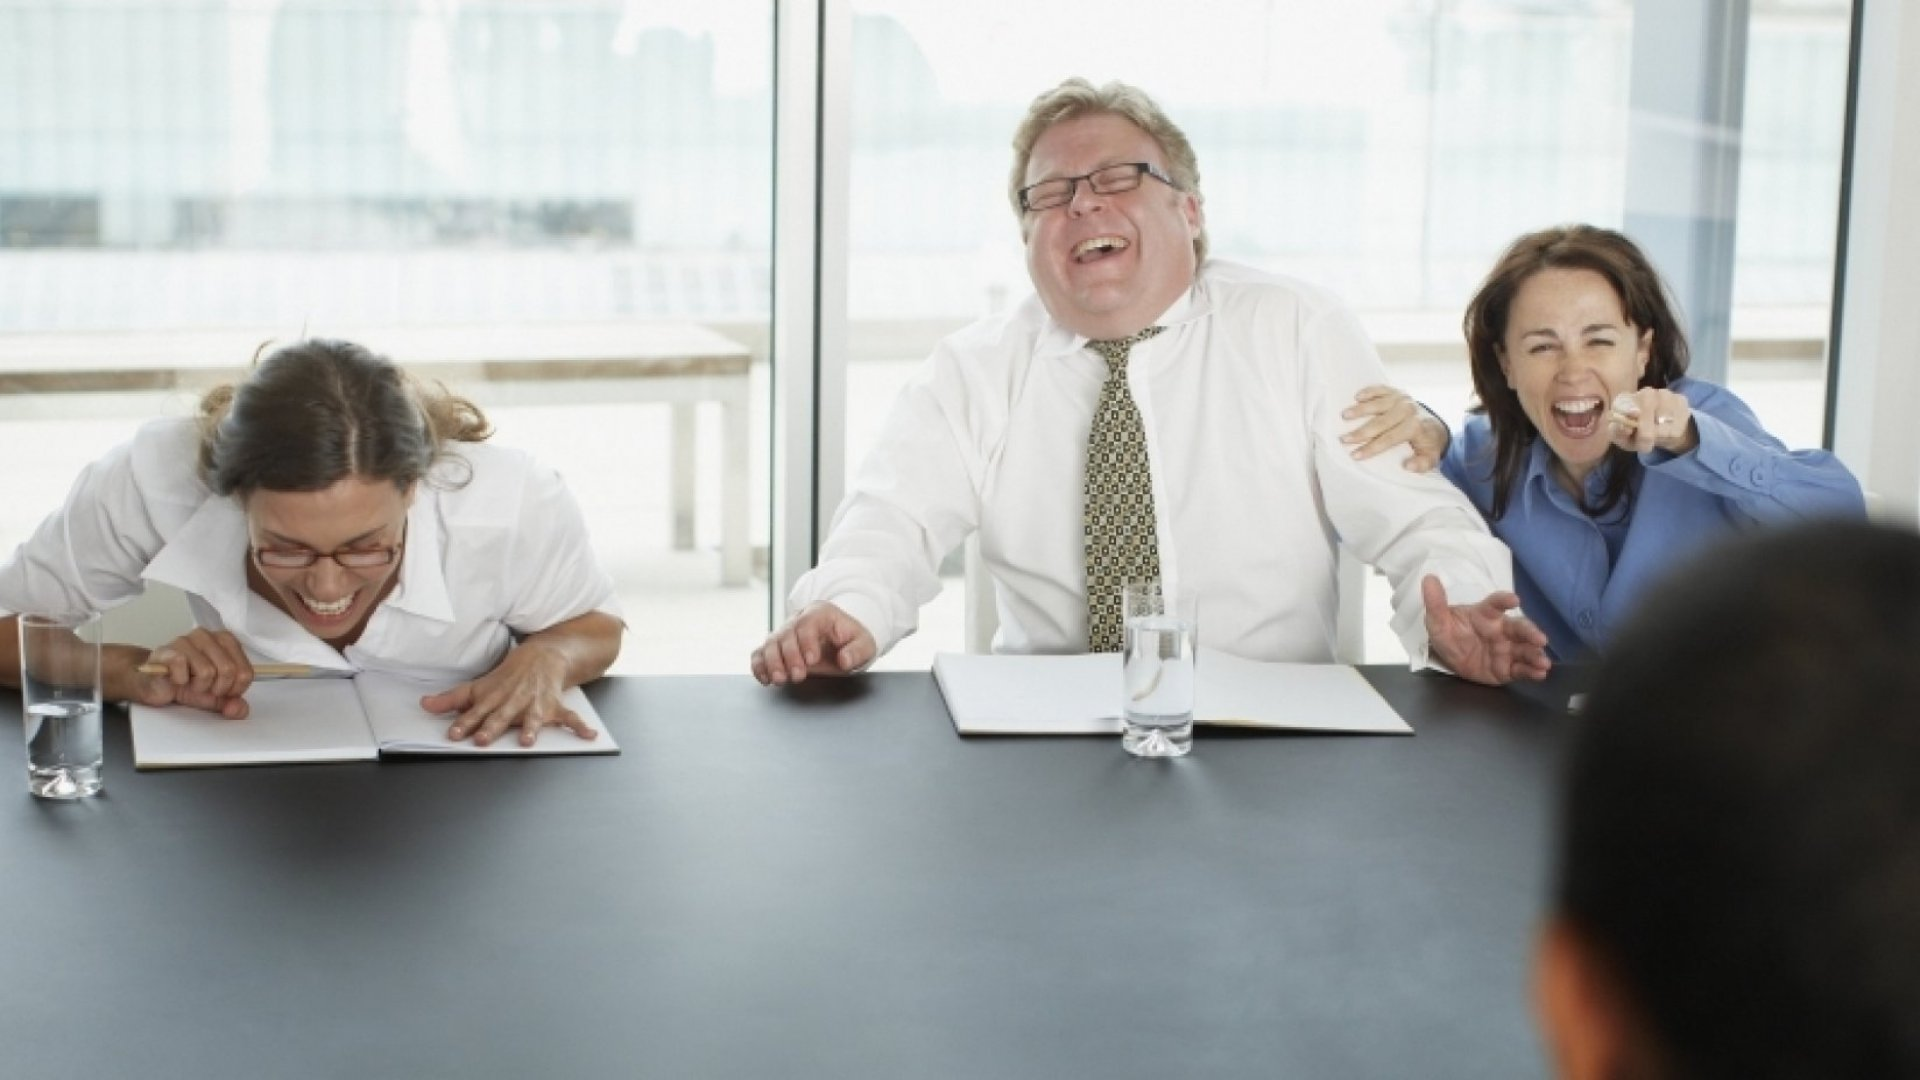 15 (More) Hilarious Tales of Job Interview Embarrassment